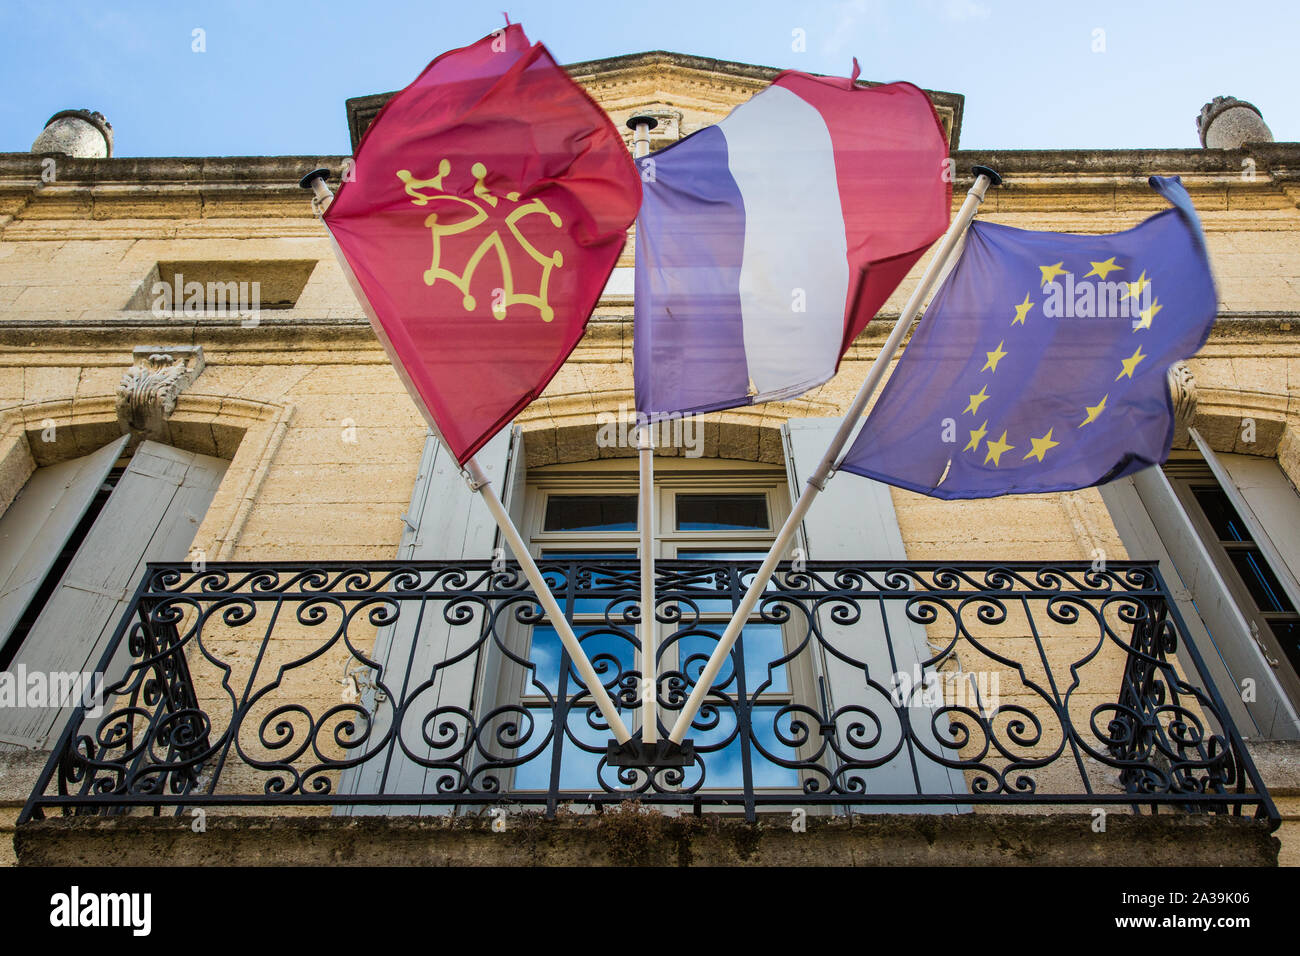 Saint-Quentin-la-Potèrie, France. 21 August, 2019. The flags of the Gard department, French Republic and European Union fly outside the town hall. Cre Stock Photo